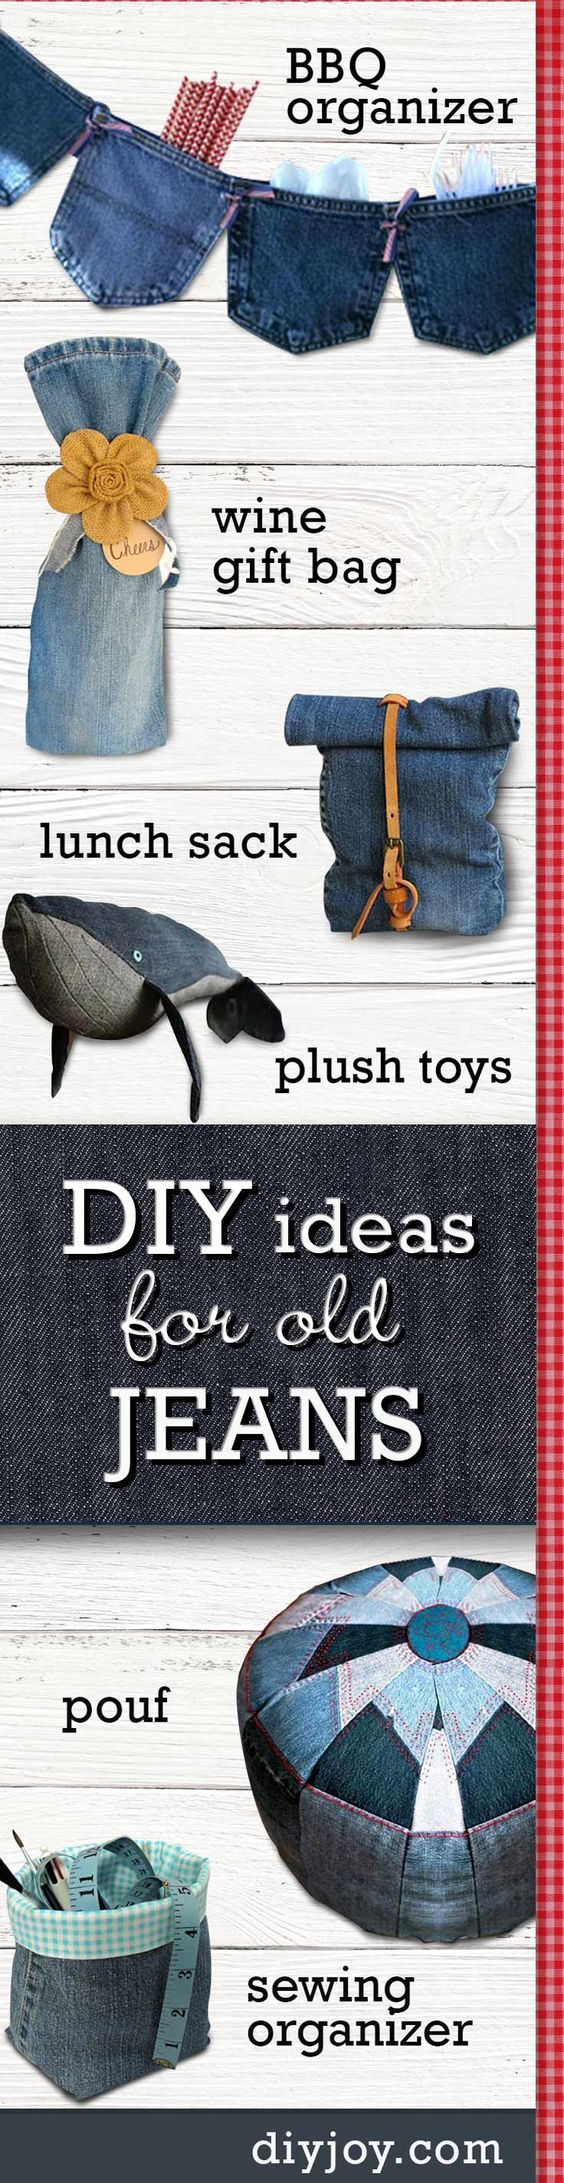 Upcycling projects old jeans and upcycling on pinterest for Jeans upcycling ideas